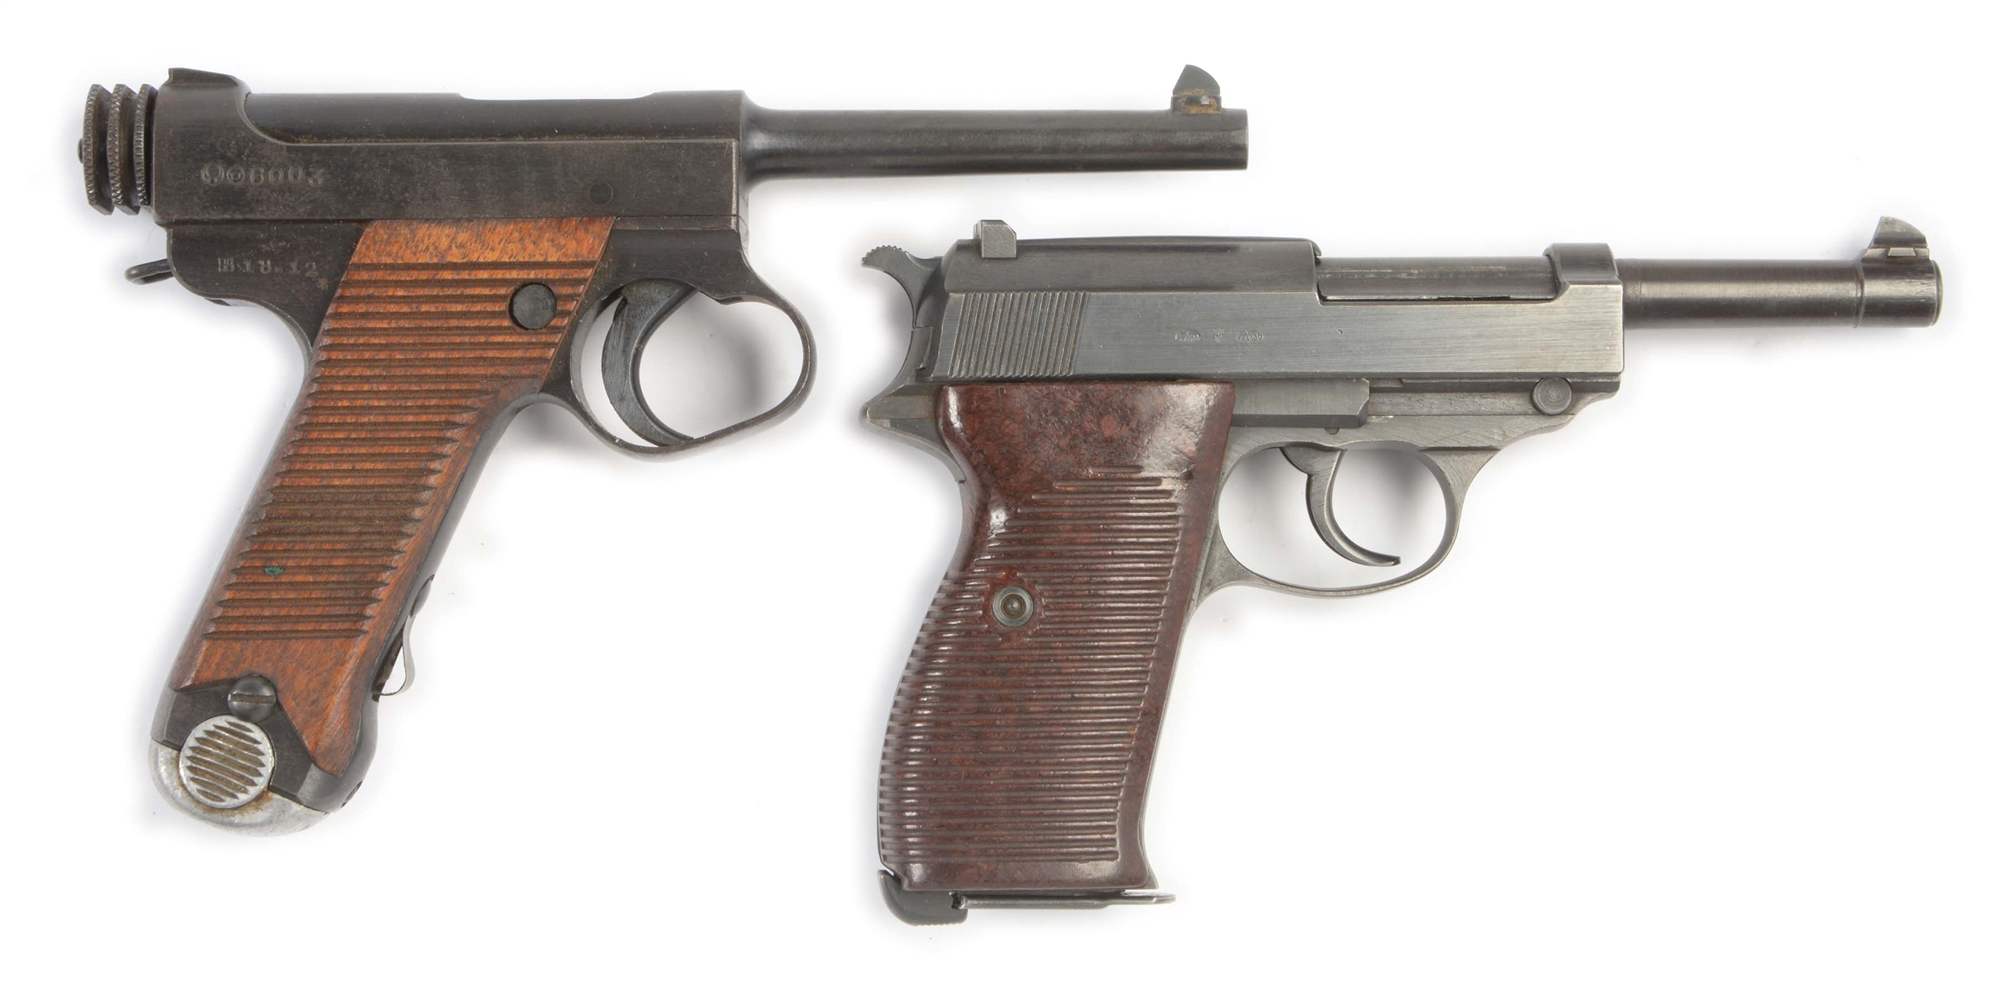 (C) LOT OF TWO: TWO WORLD WAR II CLASSIC HANDGUNS, NAMBU & P38.